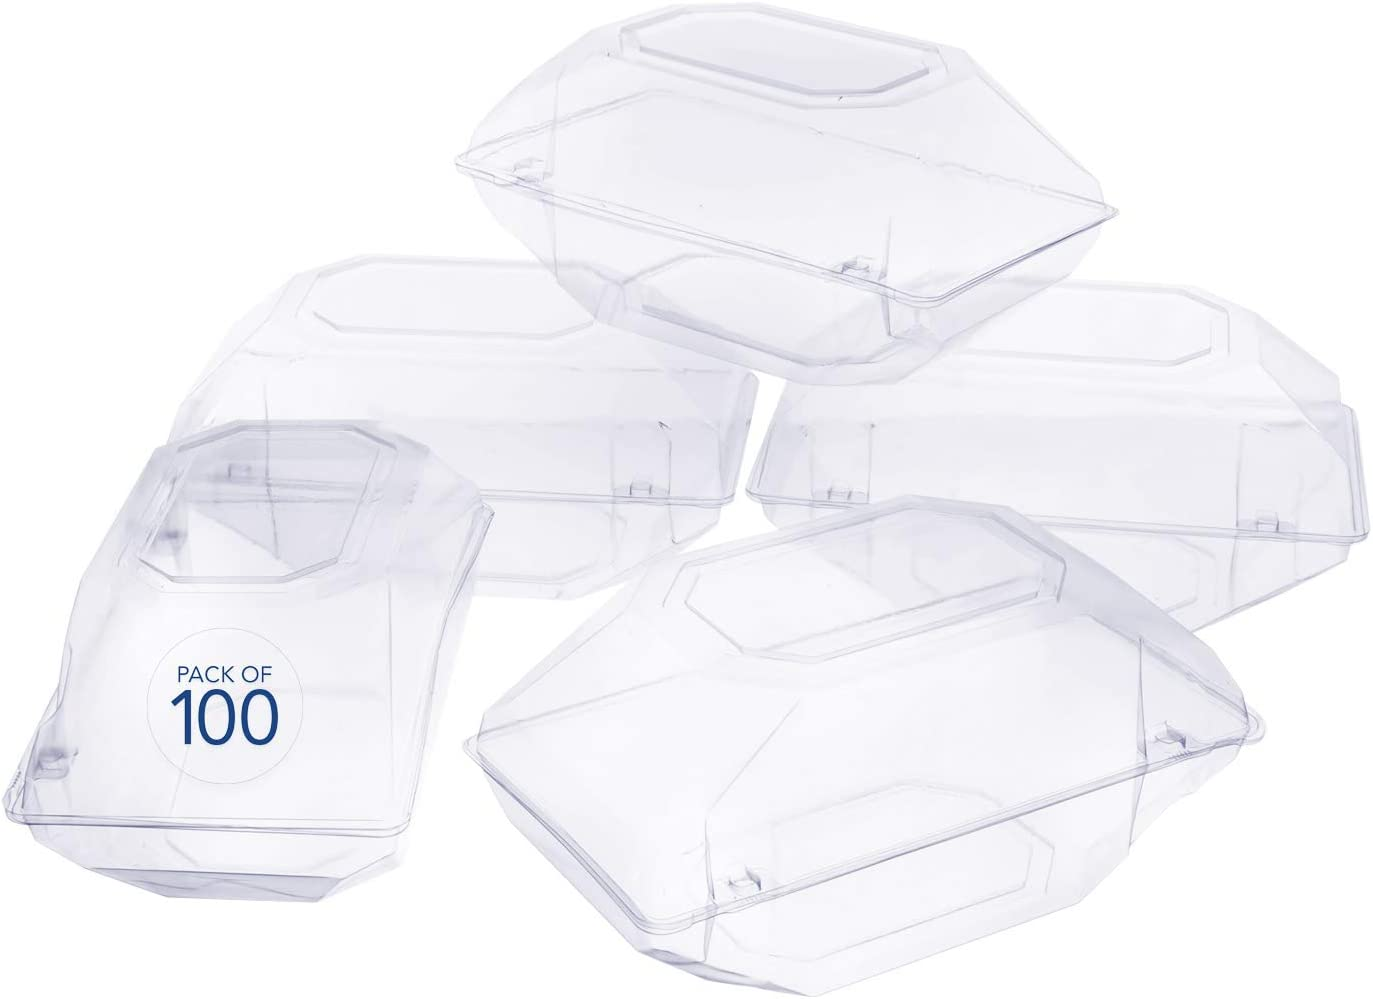 Royal Imports 100 Pack Clear Plastic Flower Box for Corsage, Boutonniere, Rose, Orchid Prom Wedding Craft Container 9x5x4